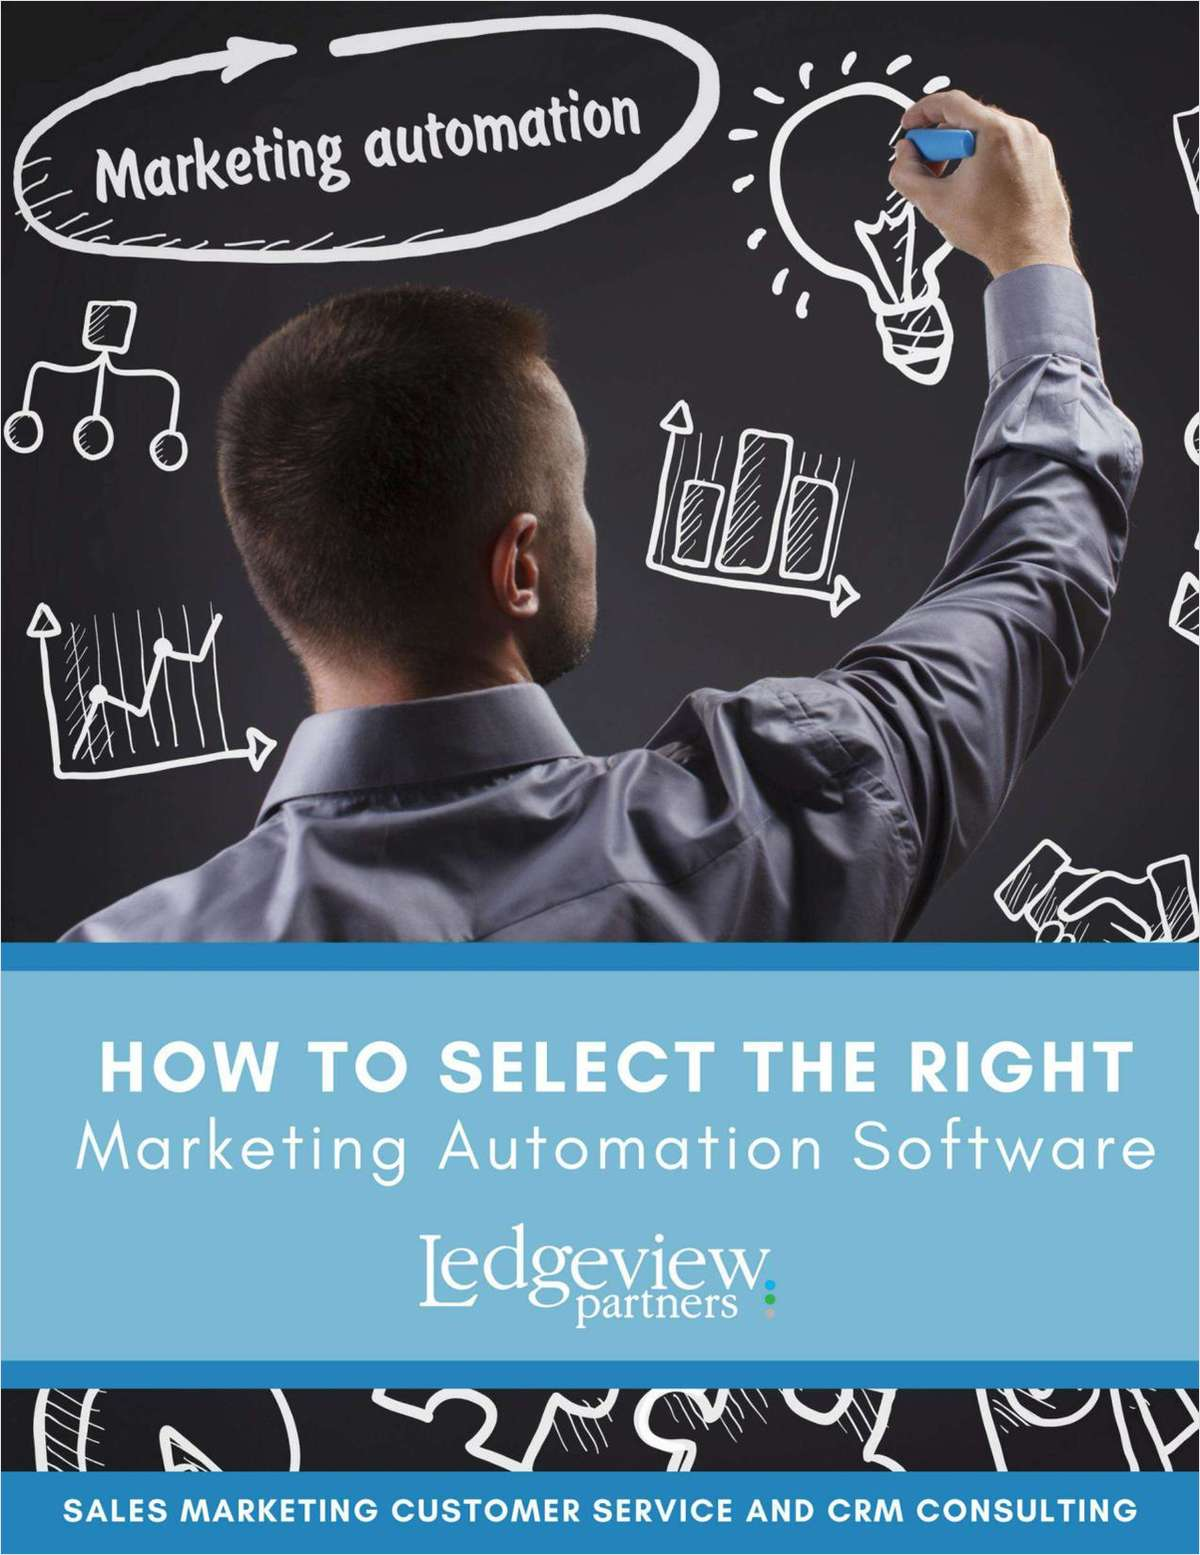 How to Select the Right Marketing Automation Software